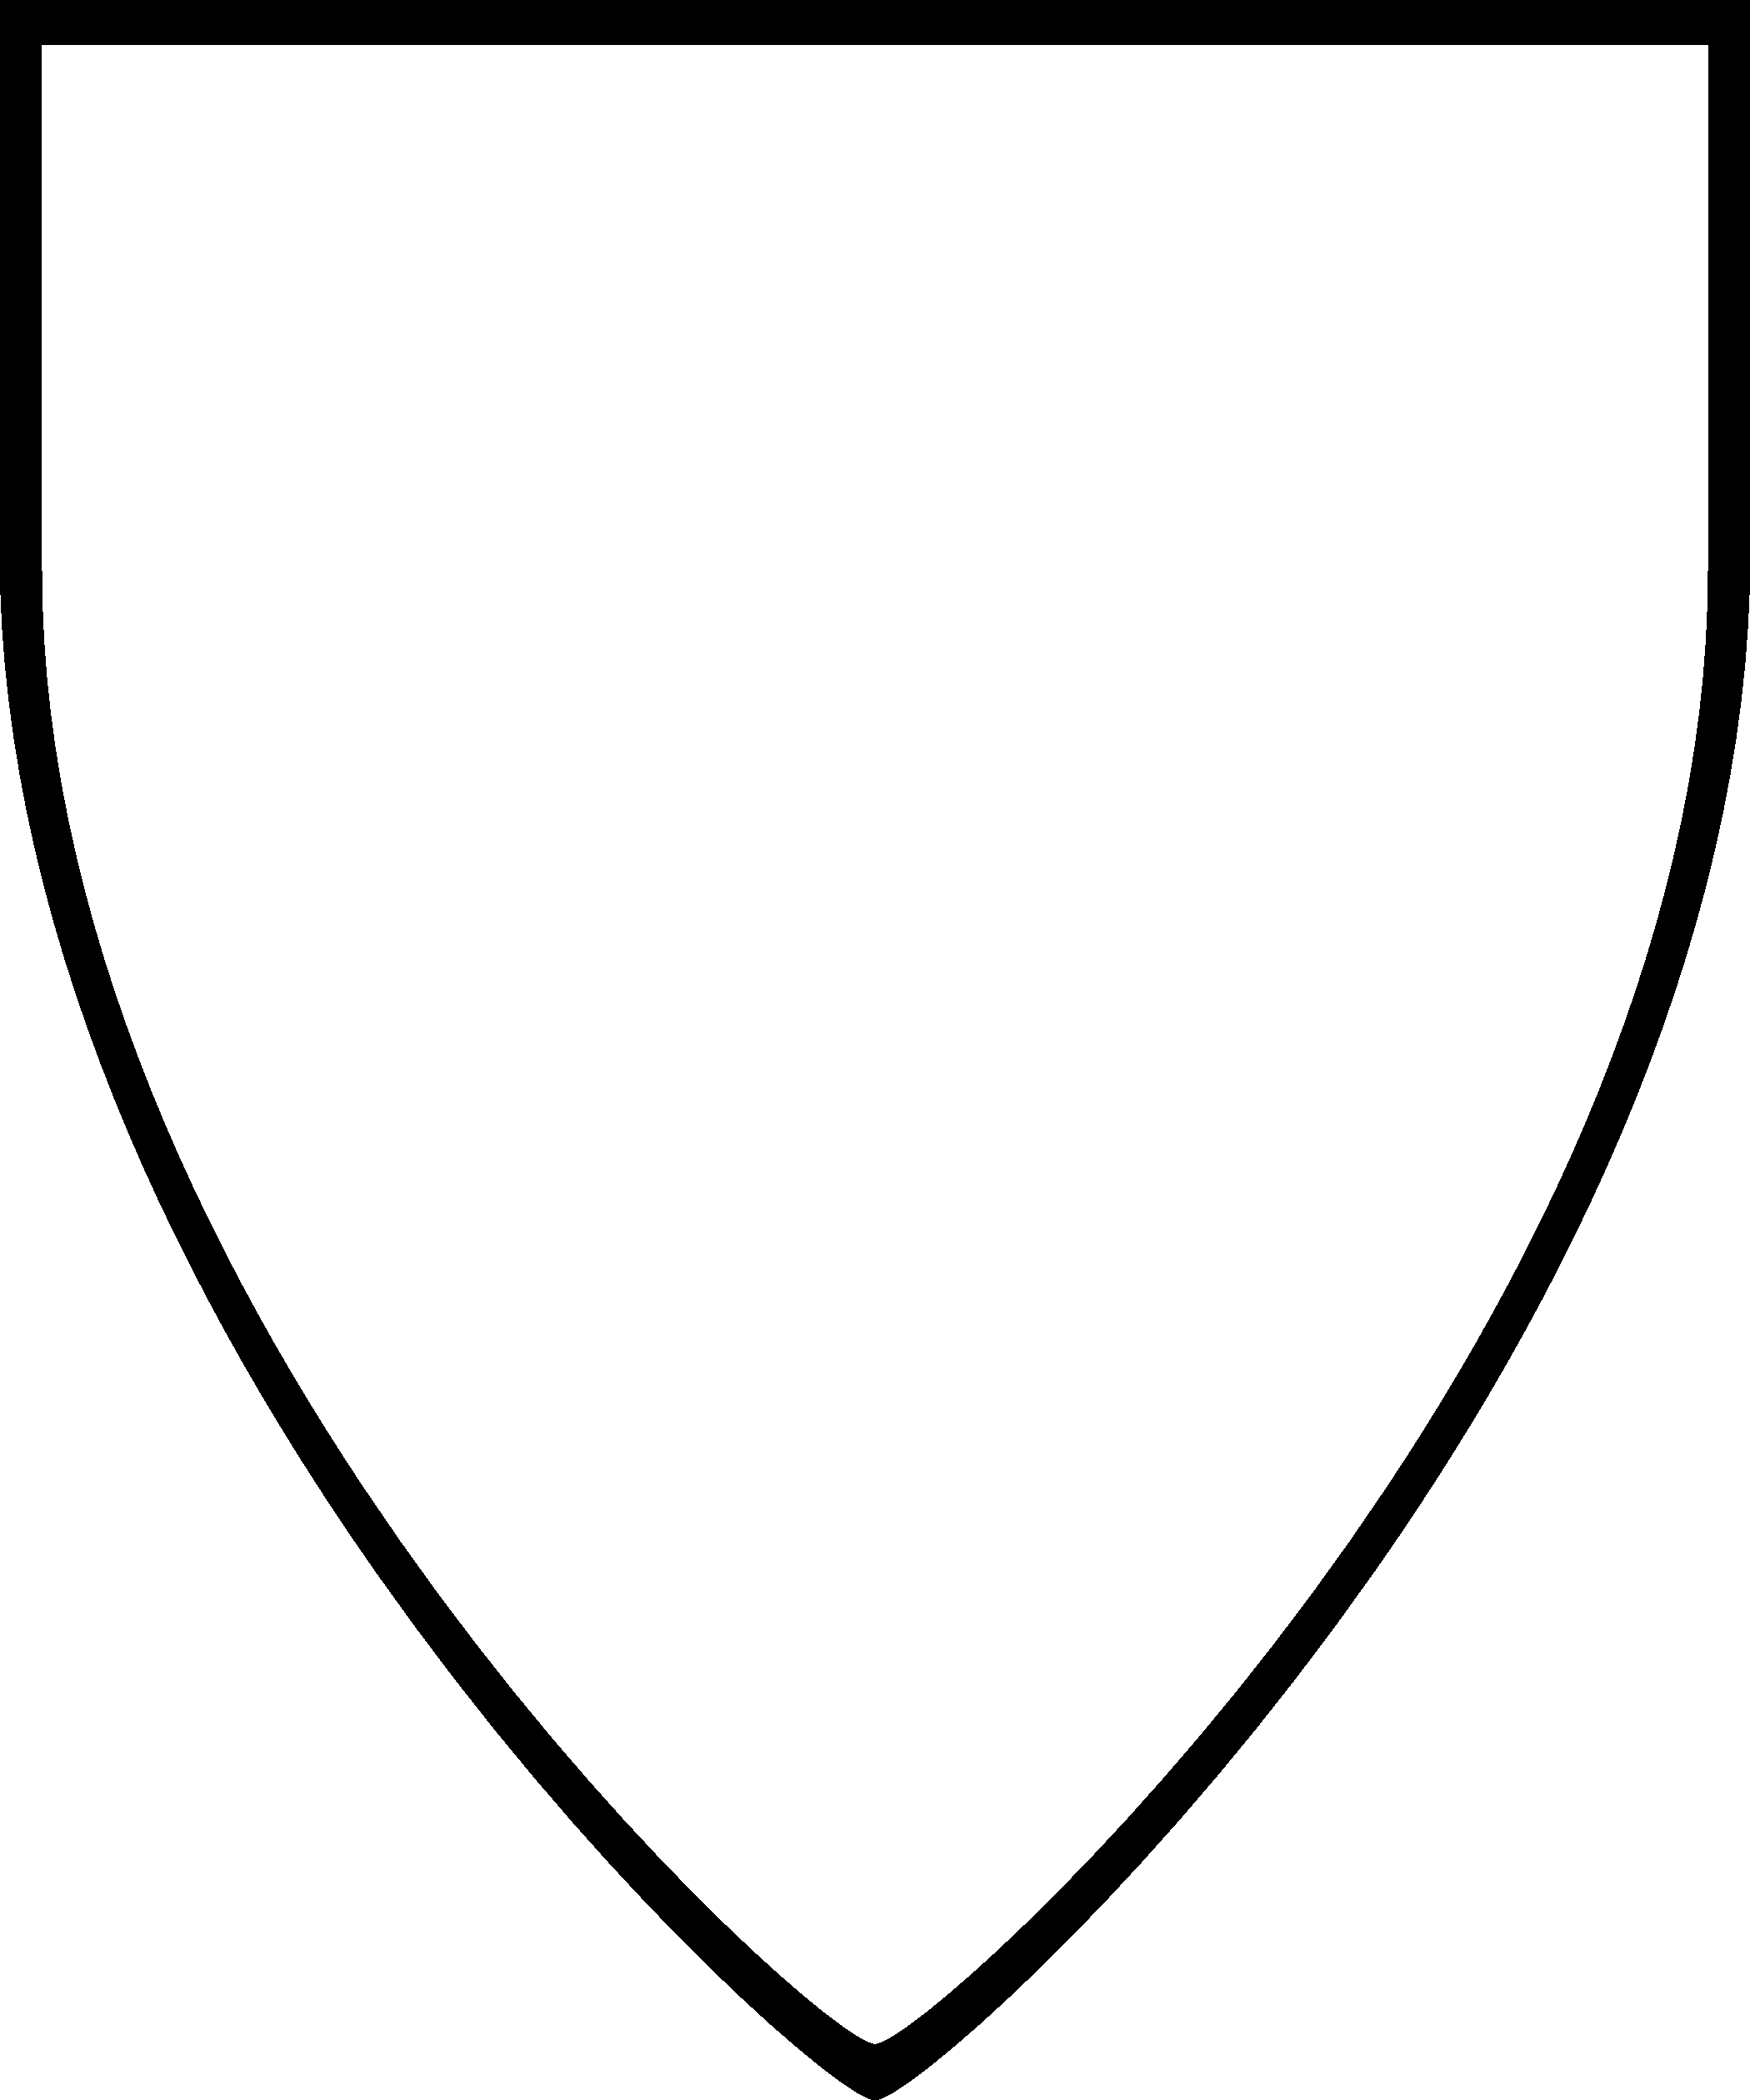 Shield pattern. Use the printable outline for crafts, creating